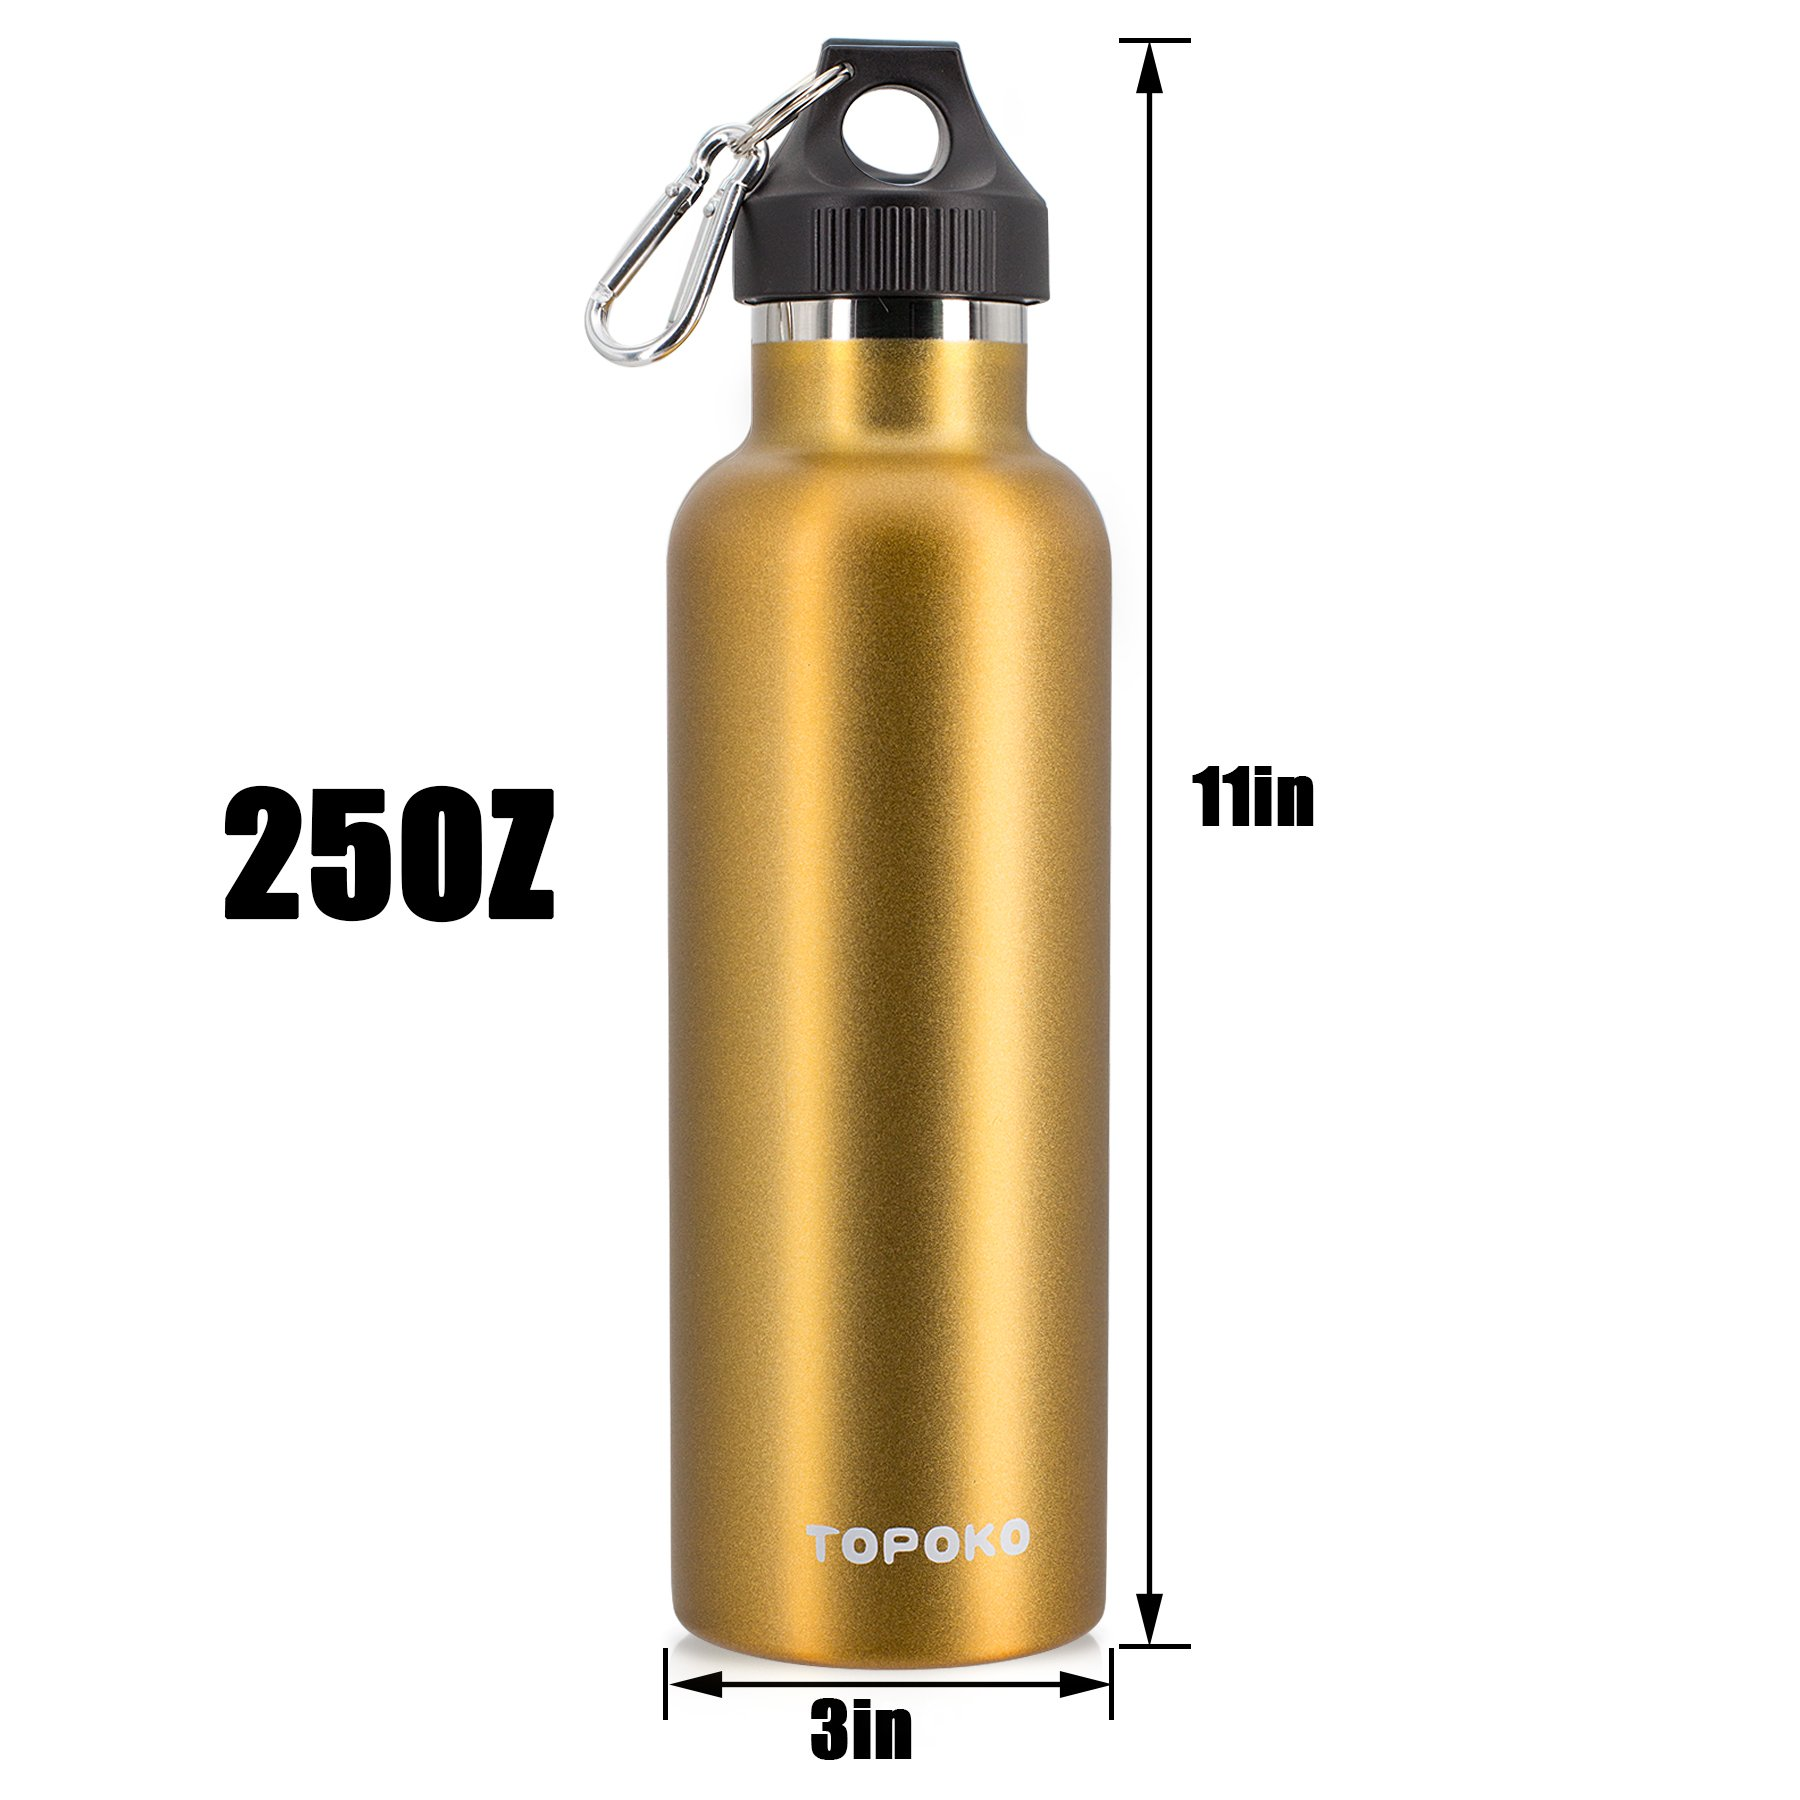 Stainless Steel Vacuum Insulated Water Bottle Double Wall - TOPOKO Top Quality Hydration Thermos - Camping Hiking Travel No Leak Rust Resistant Colored - 25 oz, Gold by TOPOKO (Image #4)